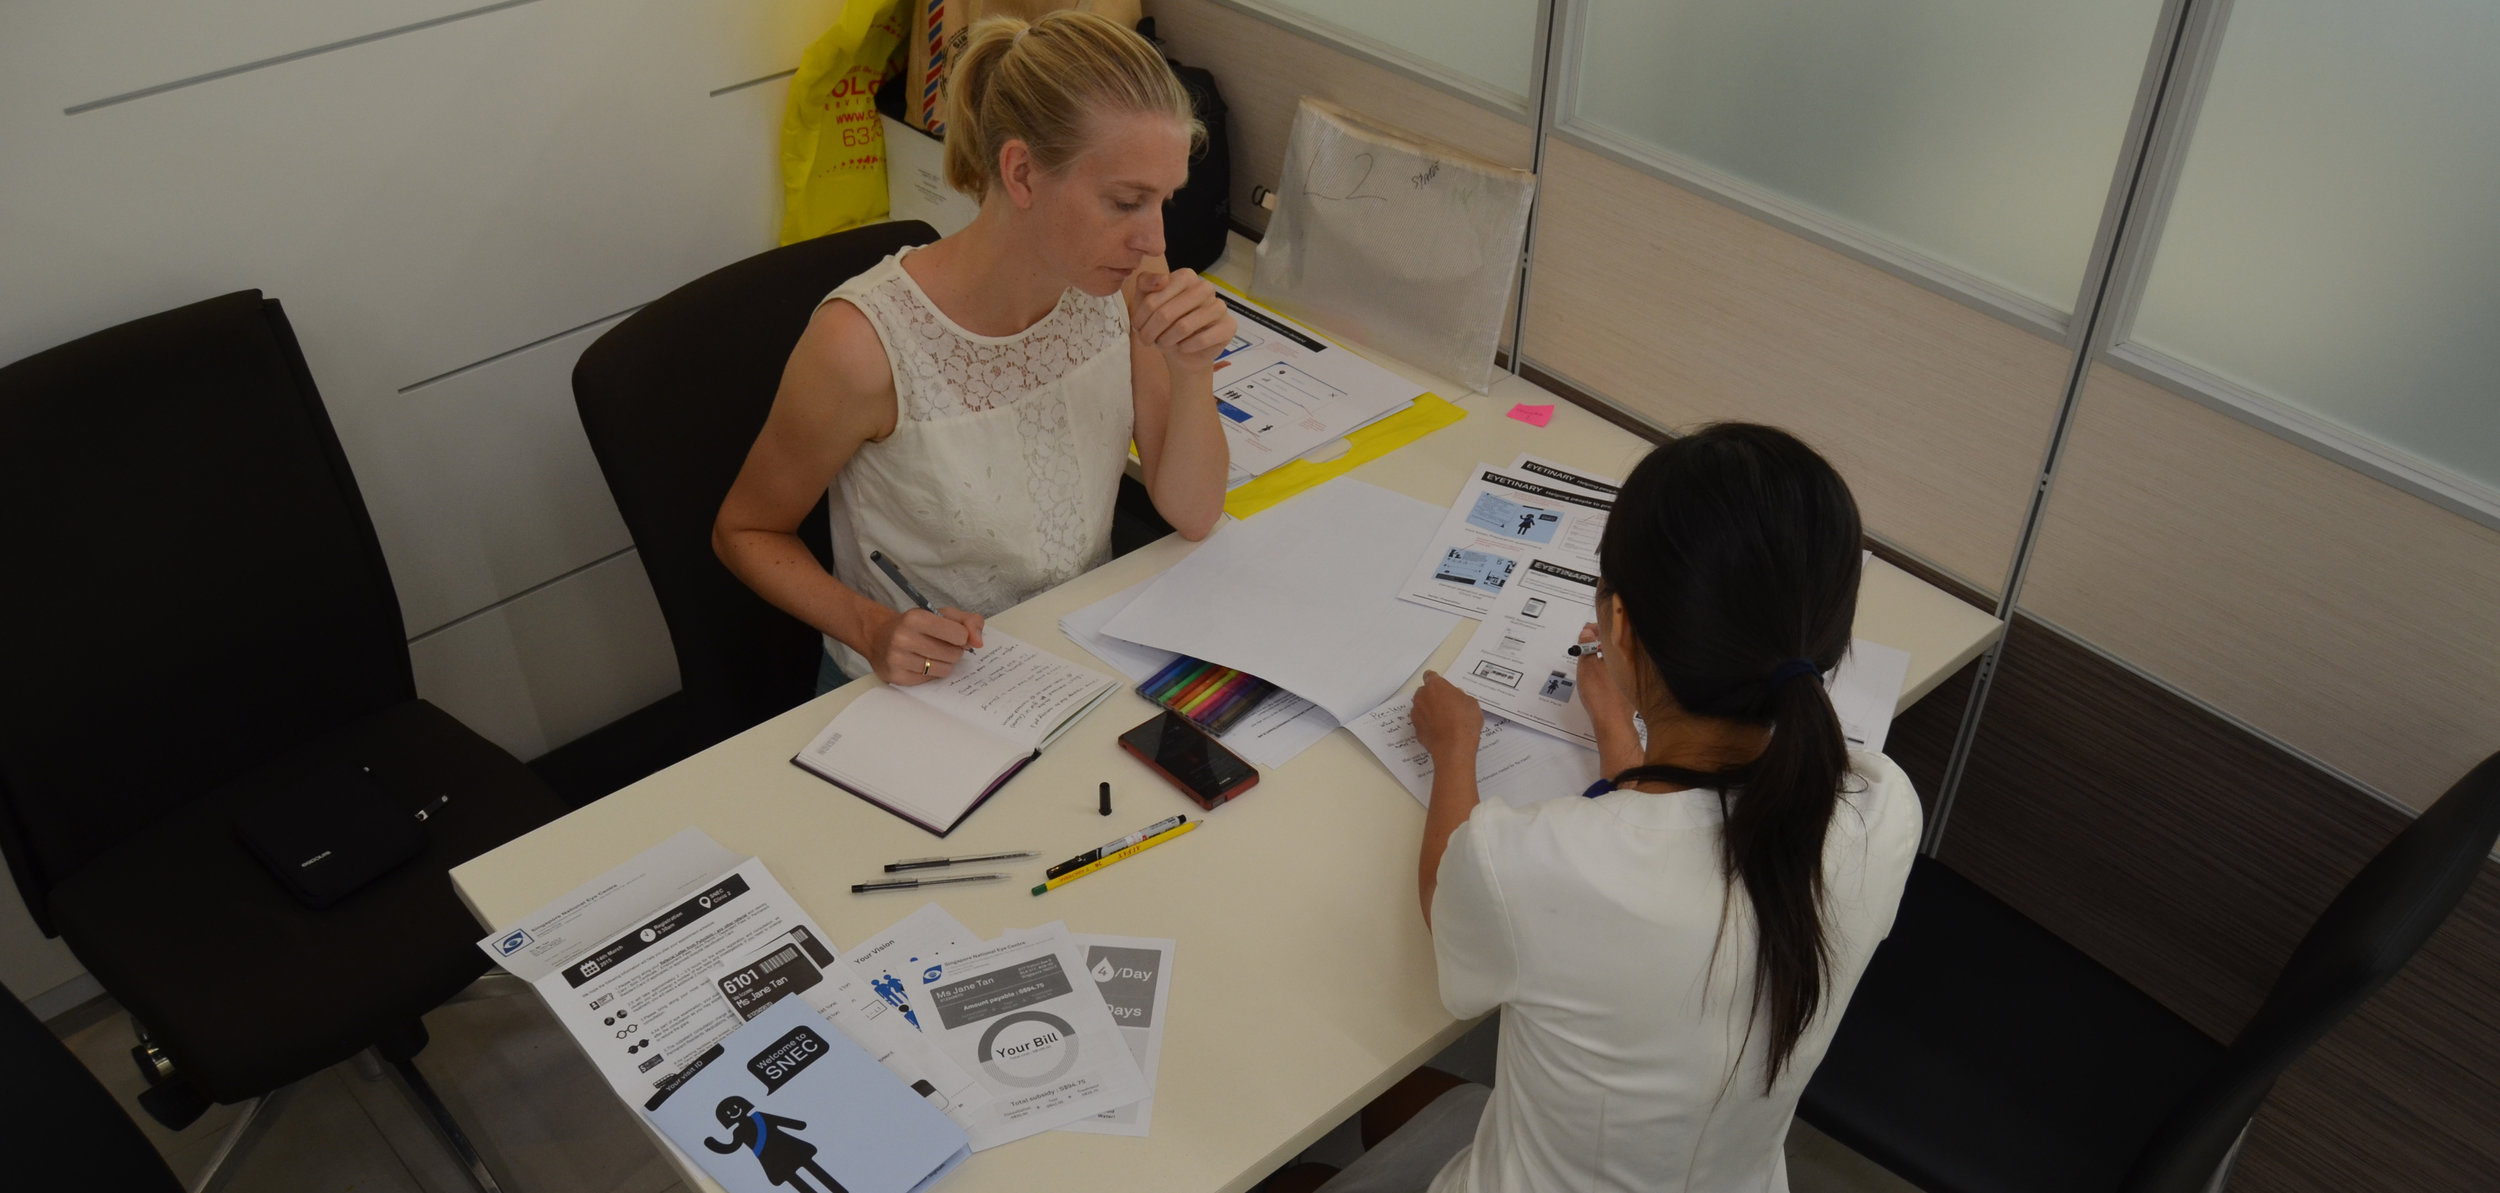 Co-creating with staff from Singapore National Eye Center (SNEC)